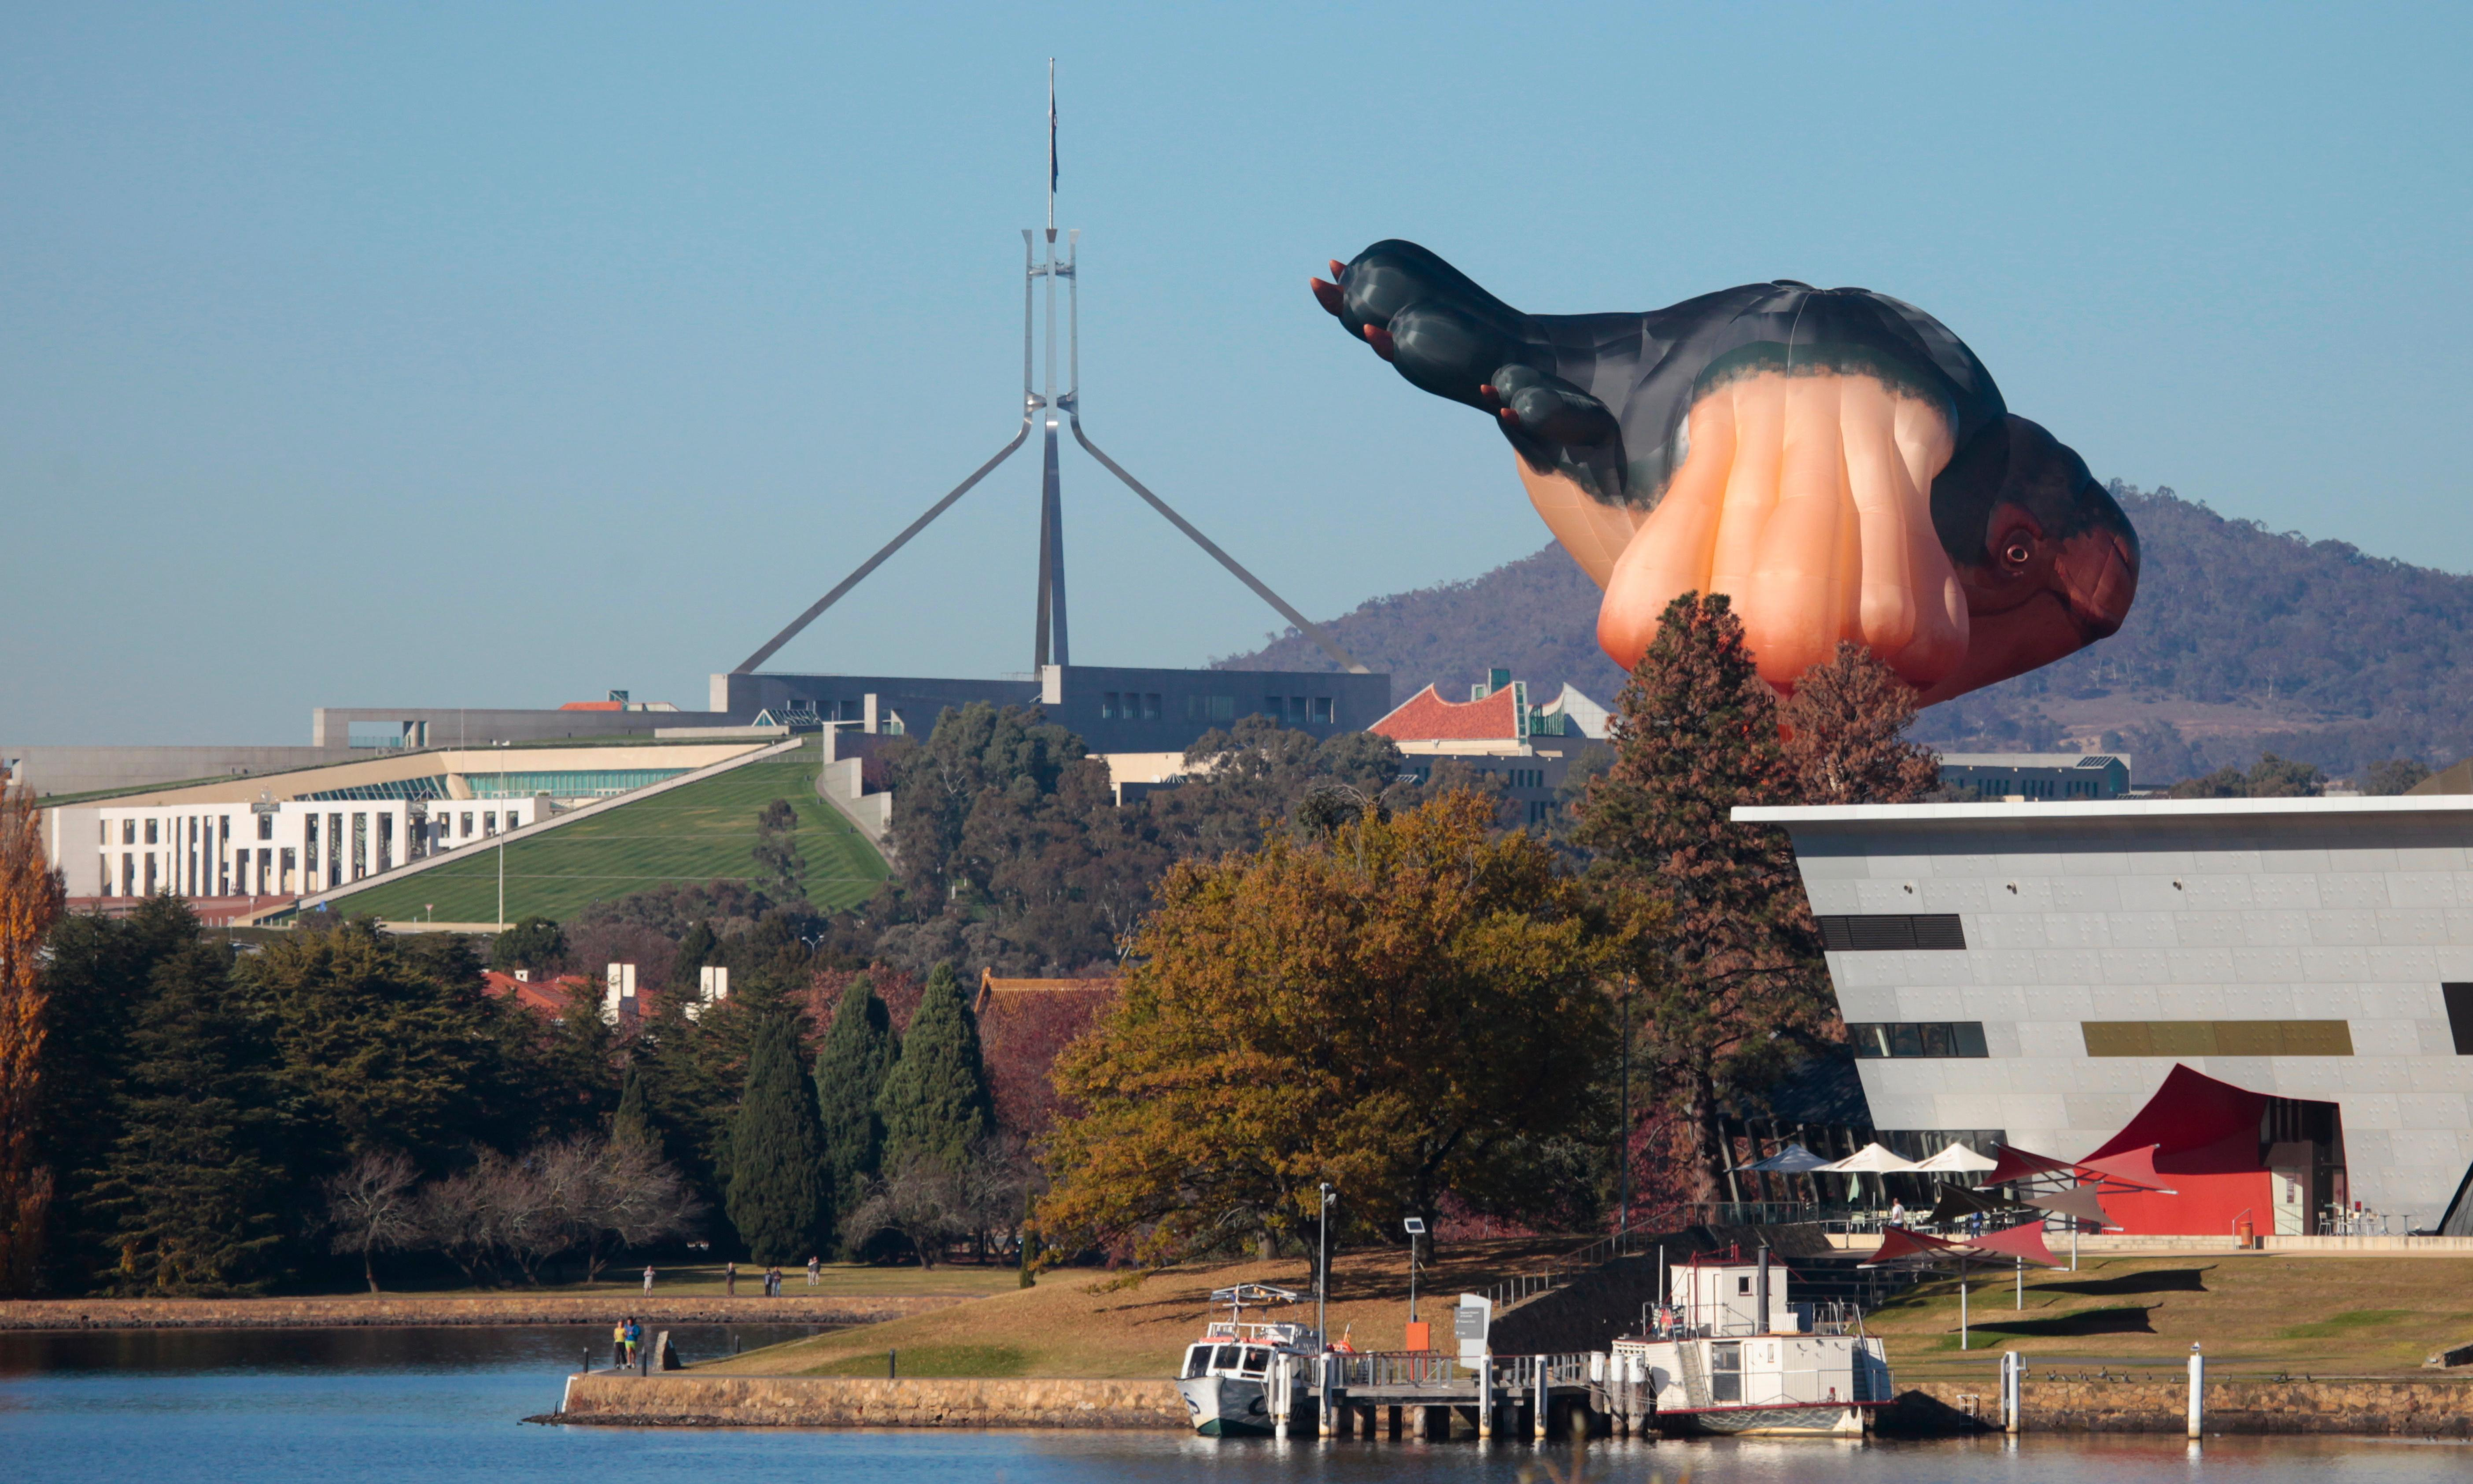 Skywhale creator unveils a companion, Skywhalepapa, to fly over Canberra